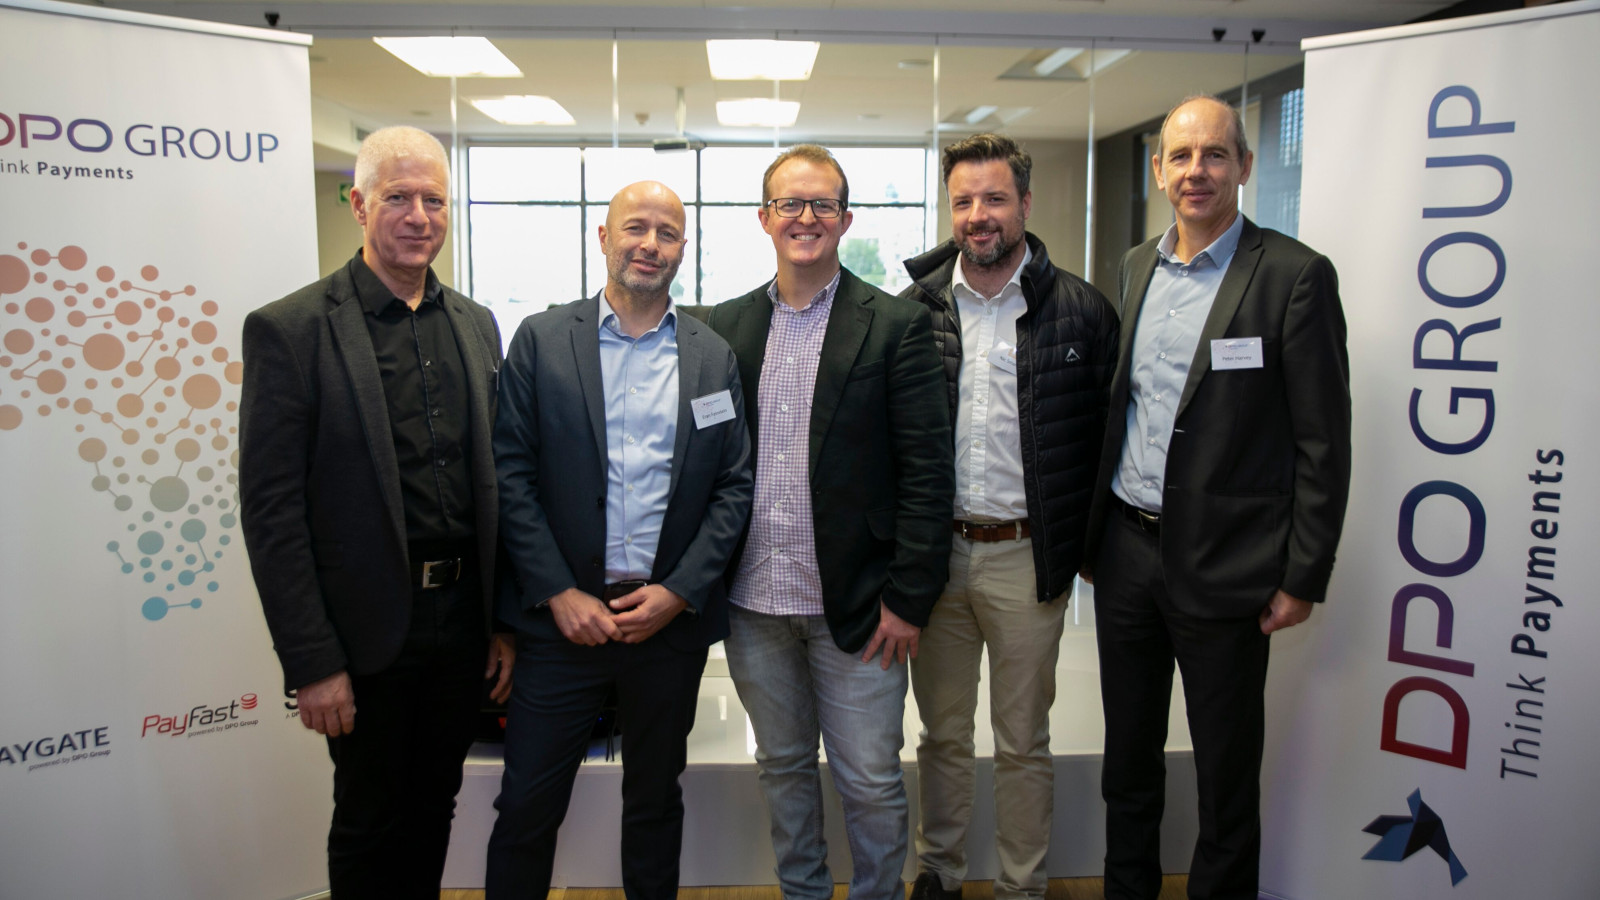 Featured image (left to right): DPO Group chairman Offer Gat, DPO Group CEO Eran Feinstein, PayFast MD and co-founder Jonathan Smit, Axis Partners MD Nicholas Smalle and DPO PayGate MD Peter Harvey